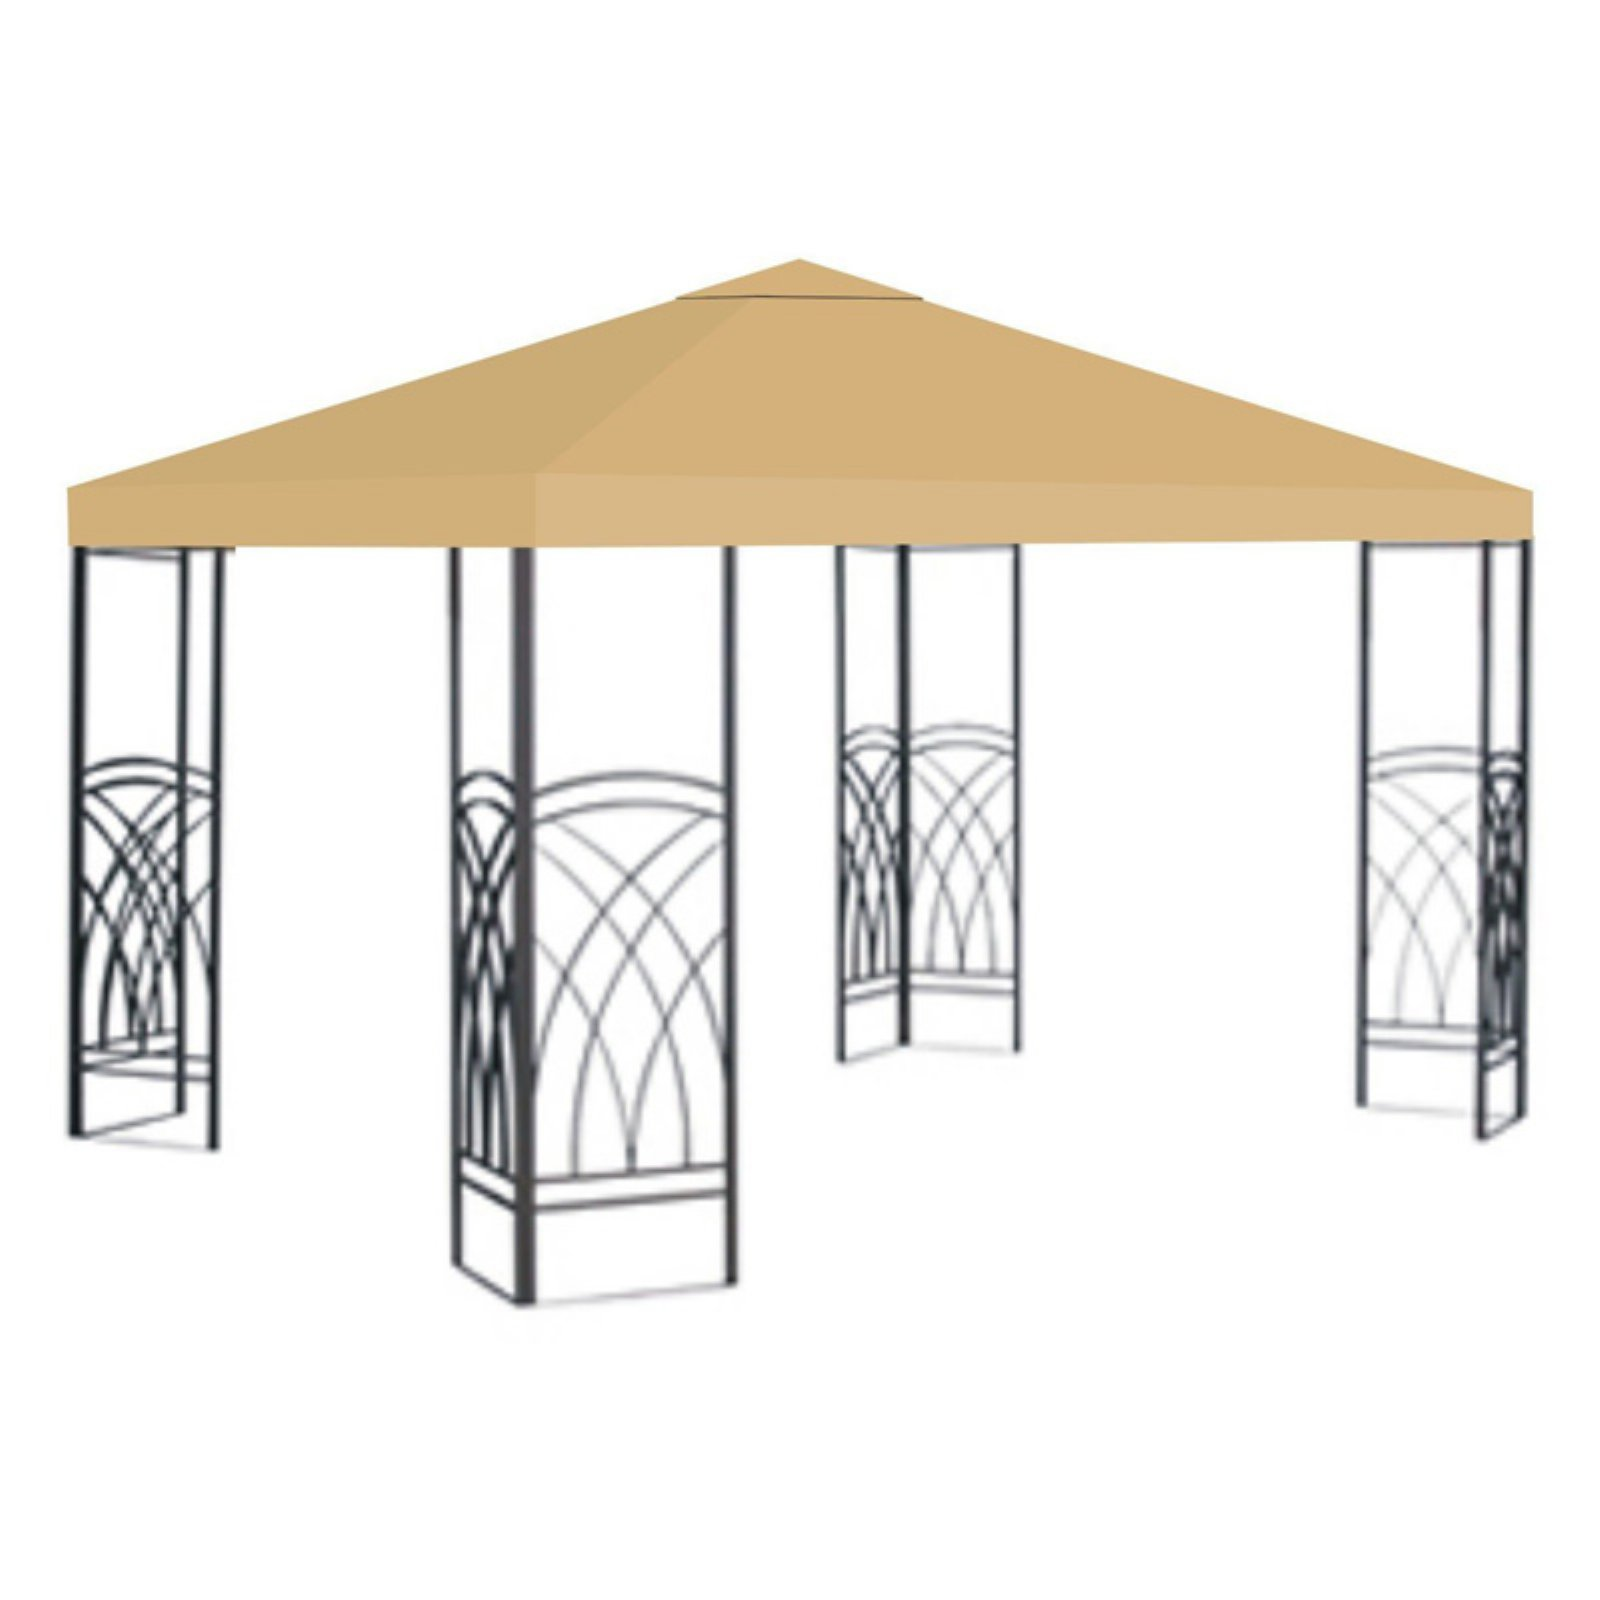 Sunrise 10 x 10 ft. Gazebo Replacement Canopy Cover